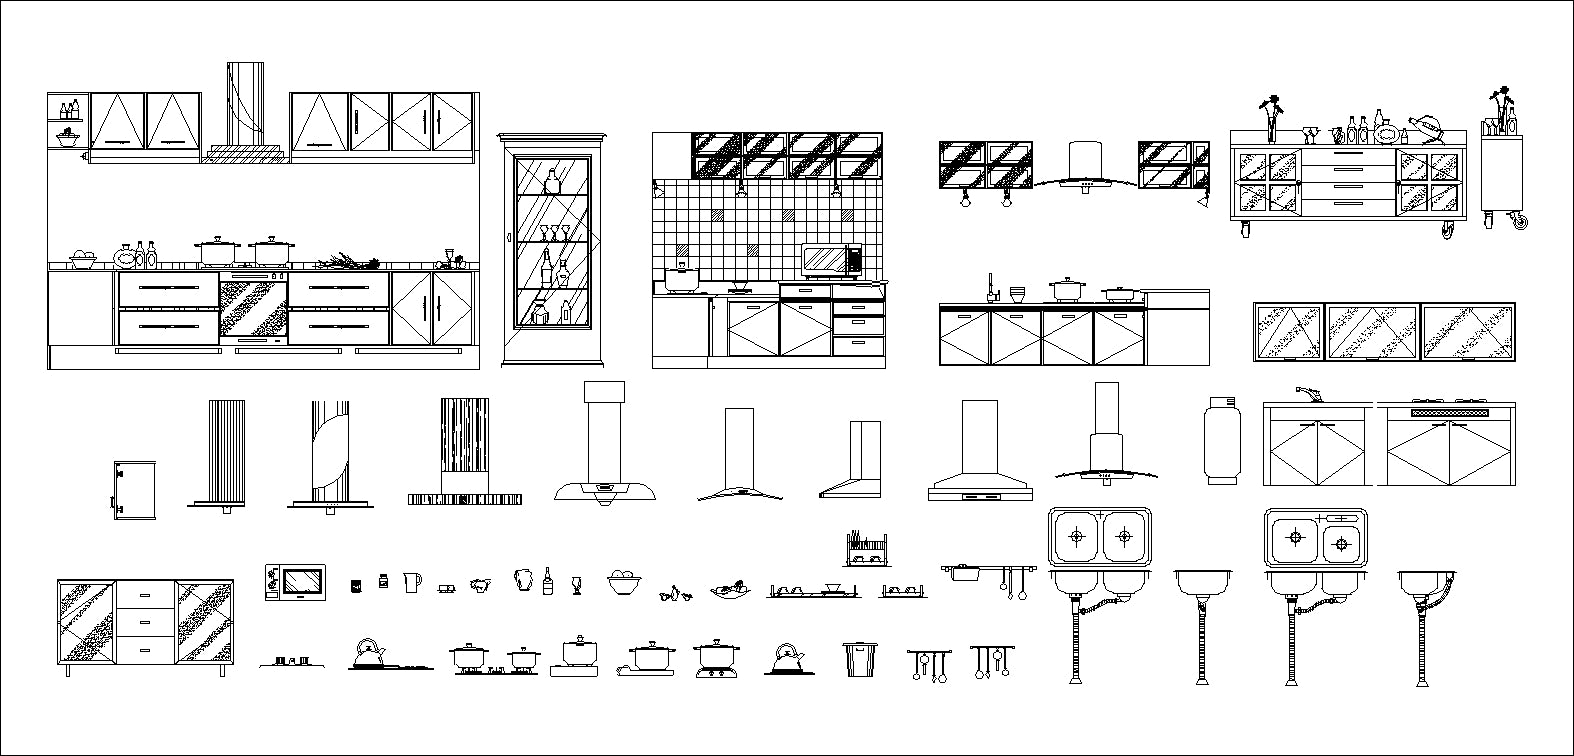 Kitchen Related Items Autocad Blocks Collections All Kinds Of Kitchen Cad Block Ebay